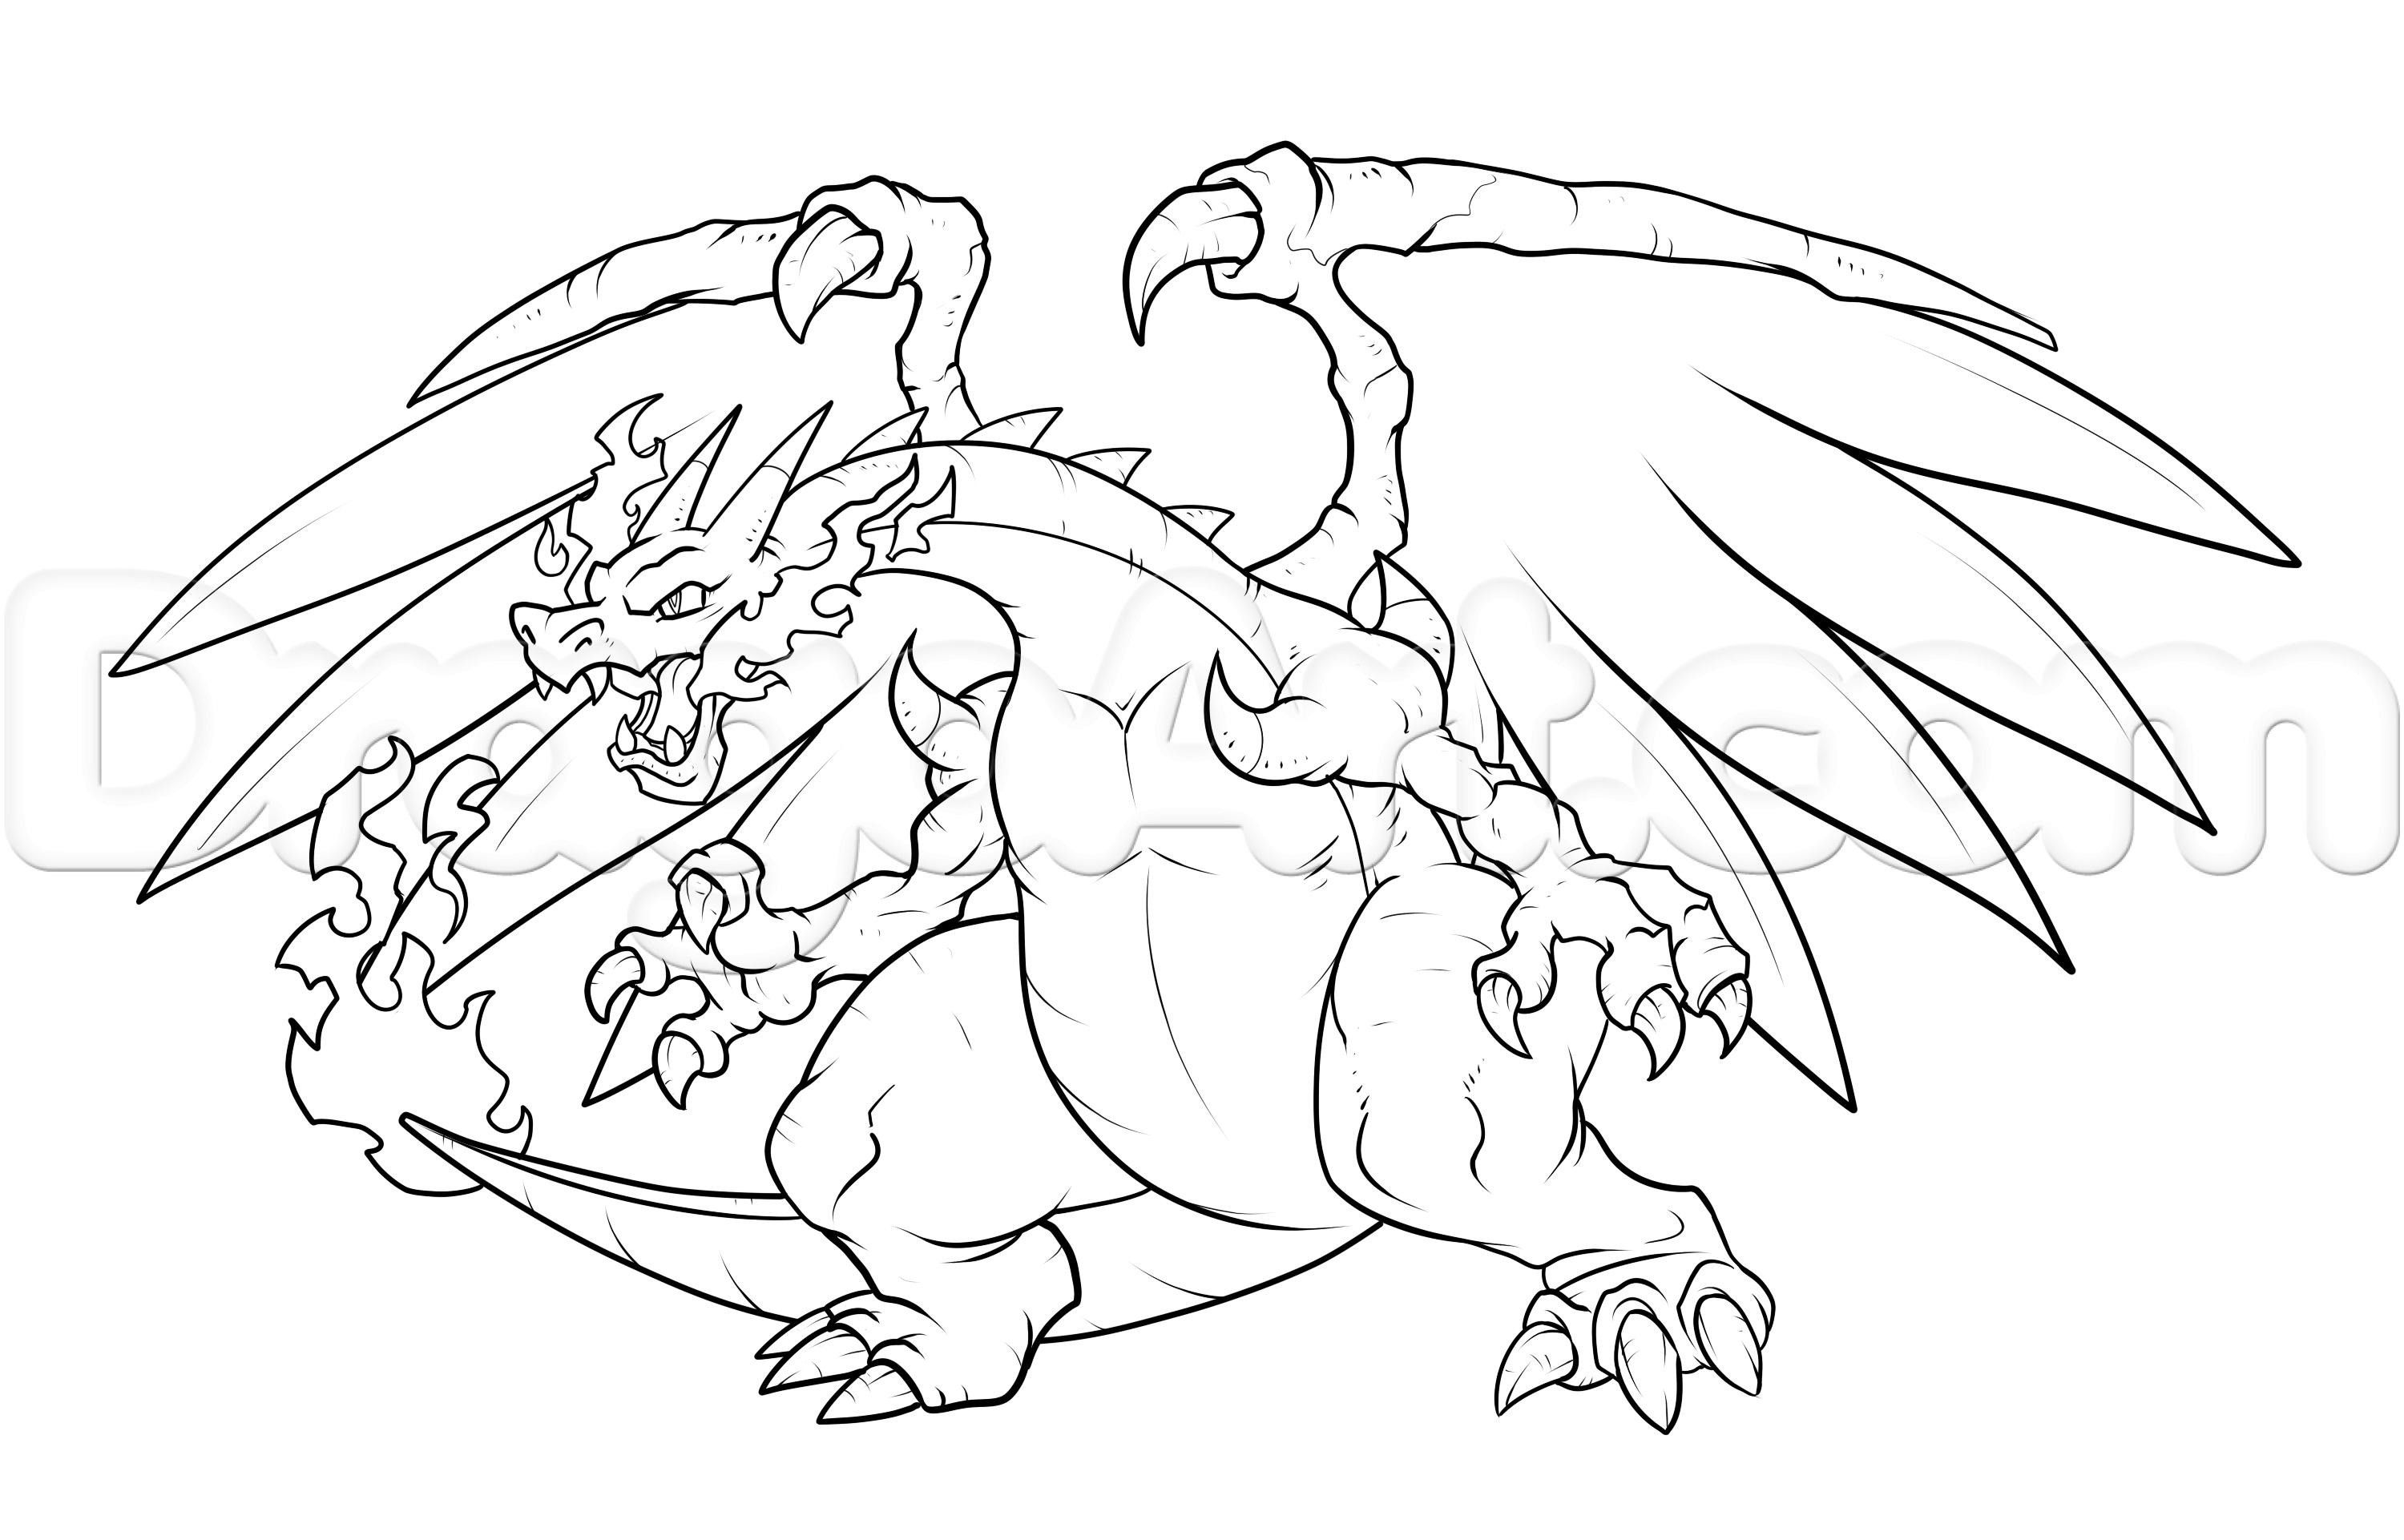 Pokemon Coloring Pages Mega Charizard Ex From The Thousand Pictures Online In Relation To Pok Pokemon Coloring Pages Moon Coloring Pages Space Coloring Pages